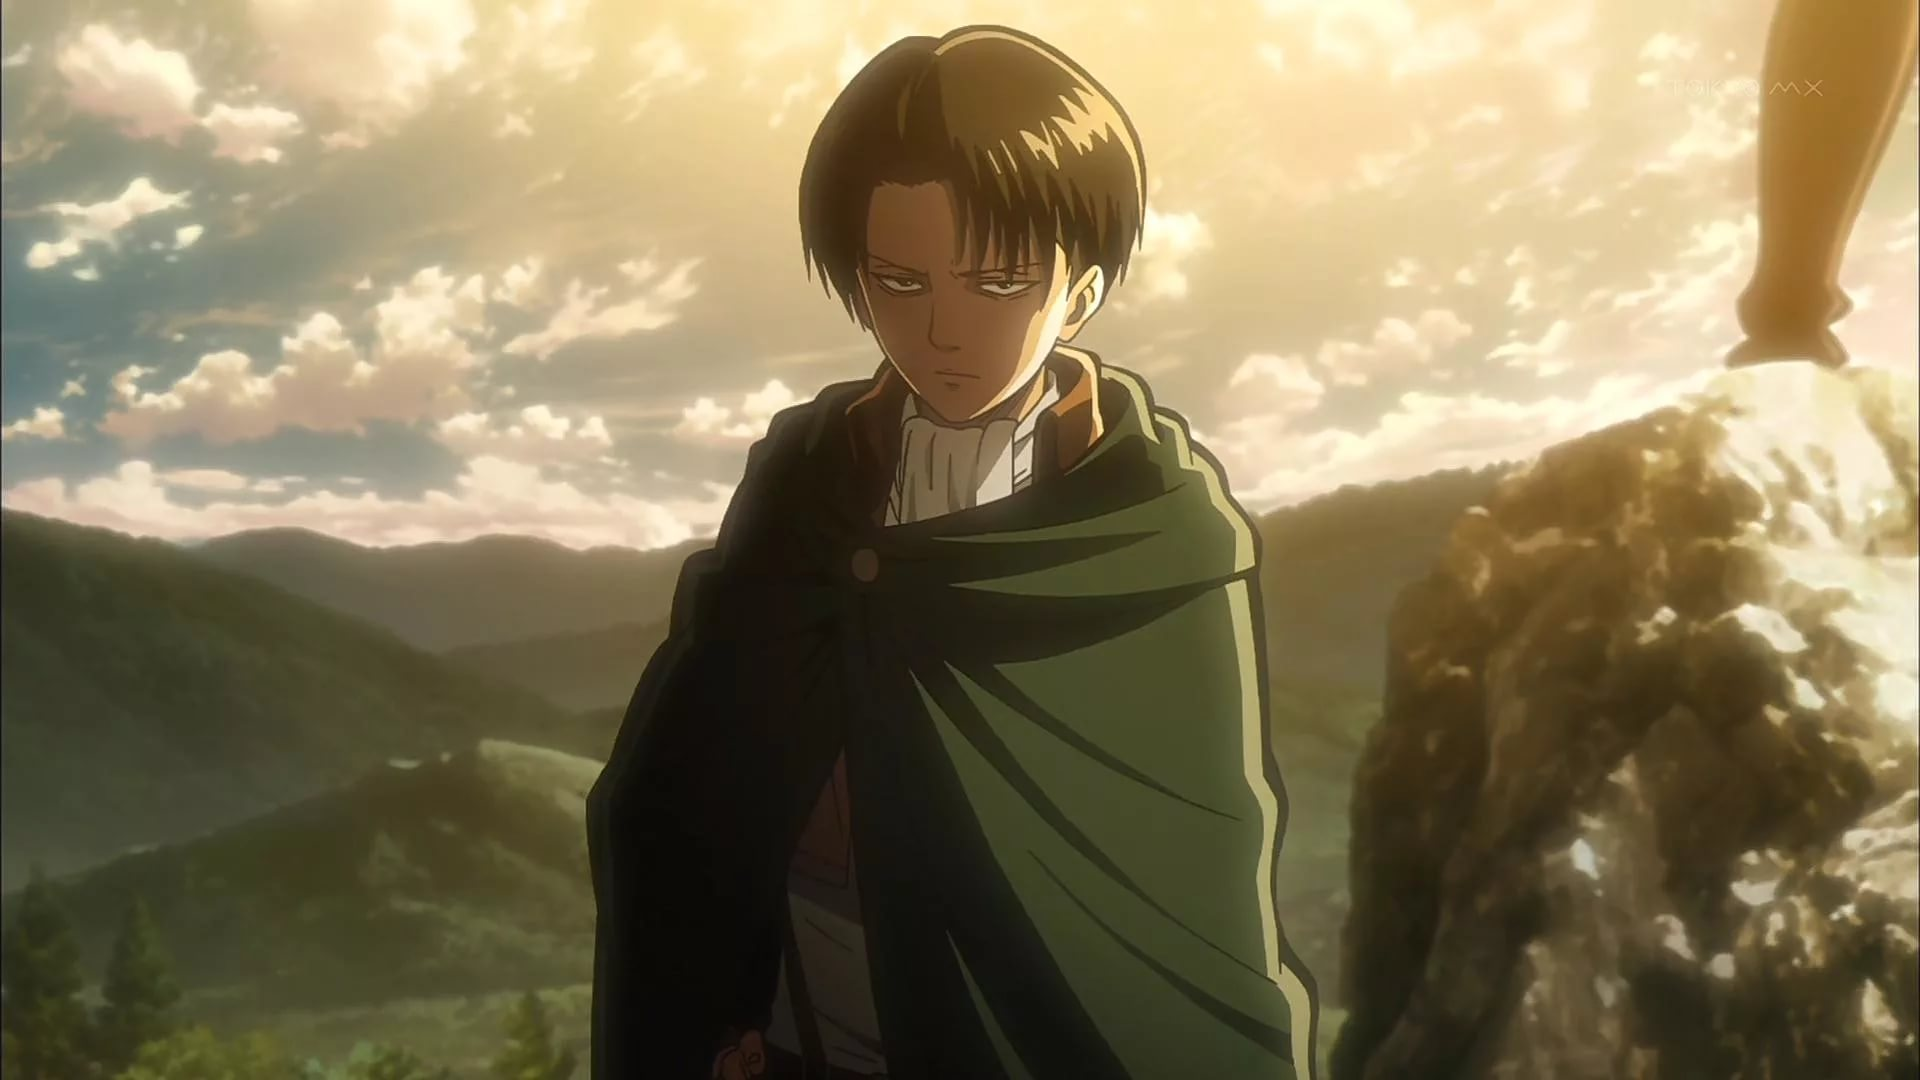 Levi Ackerman Imagens Do Levi Ackerman 474359 Hd Wallpaper Backgrounds Download